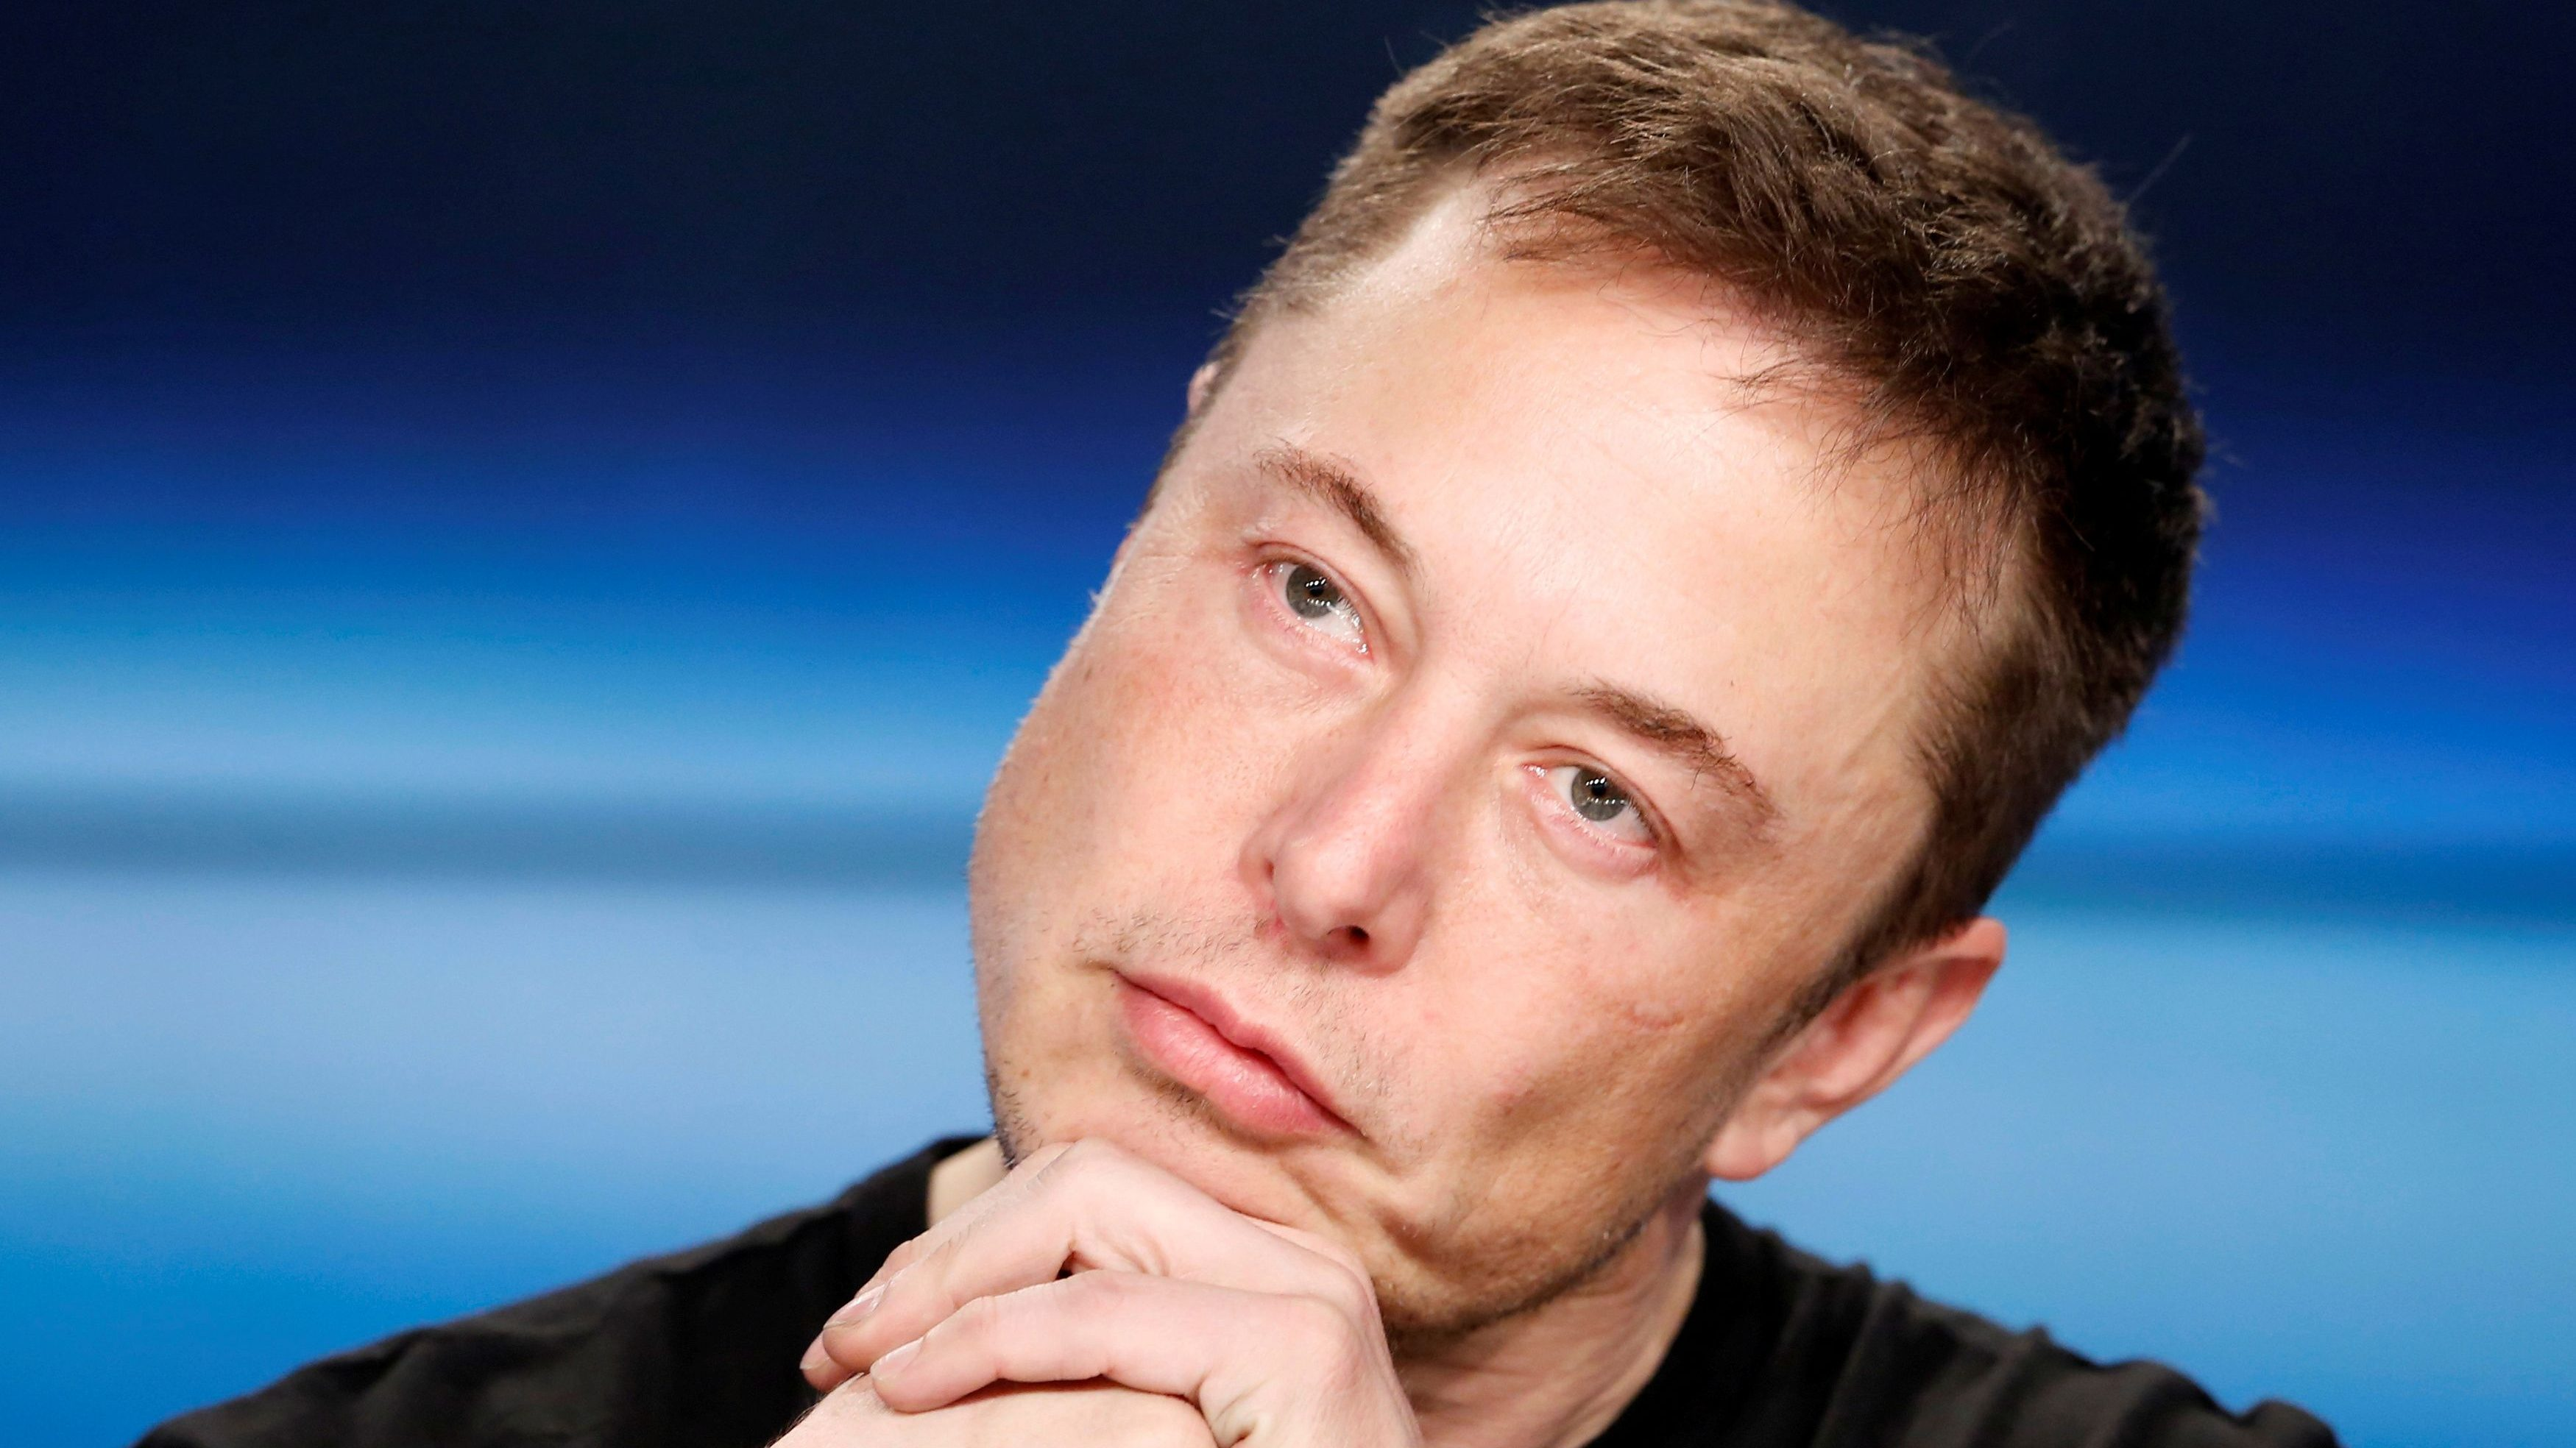 Elon Musk listens at a press conference following the first launch of a SpaceX Falcon Heavy rocket at the Kennedy Space Center in Cape Canaveral, Florida, U.S., February 6, 2018.